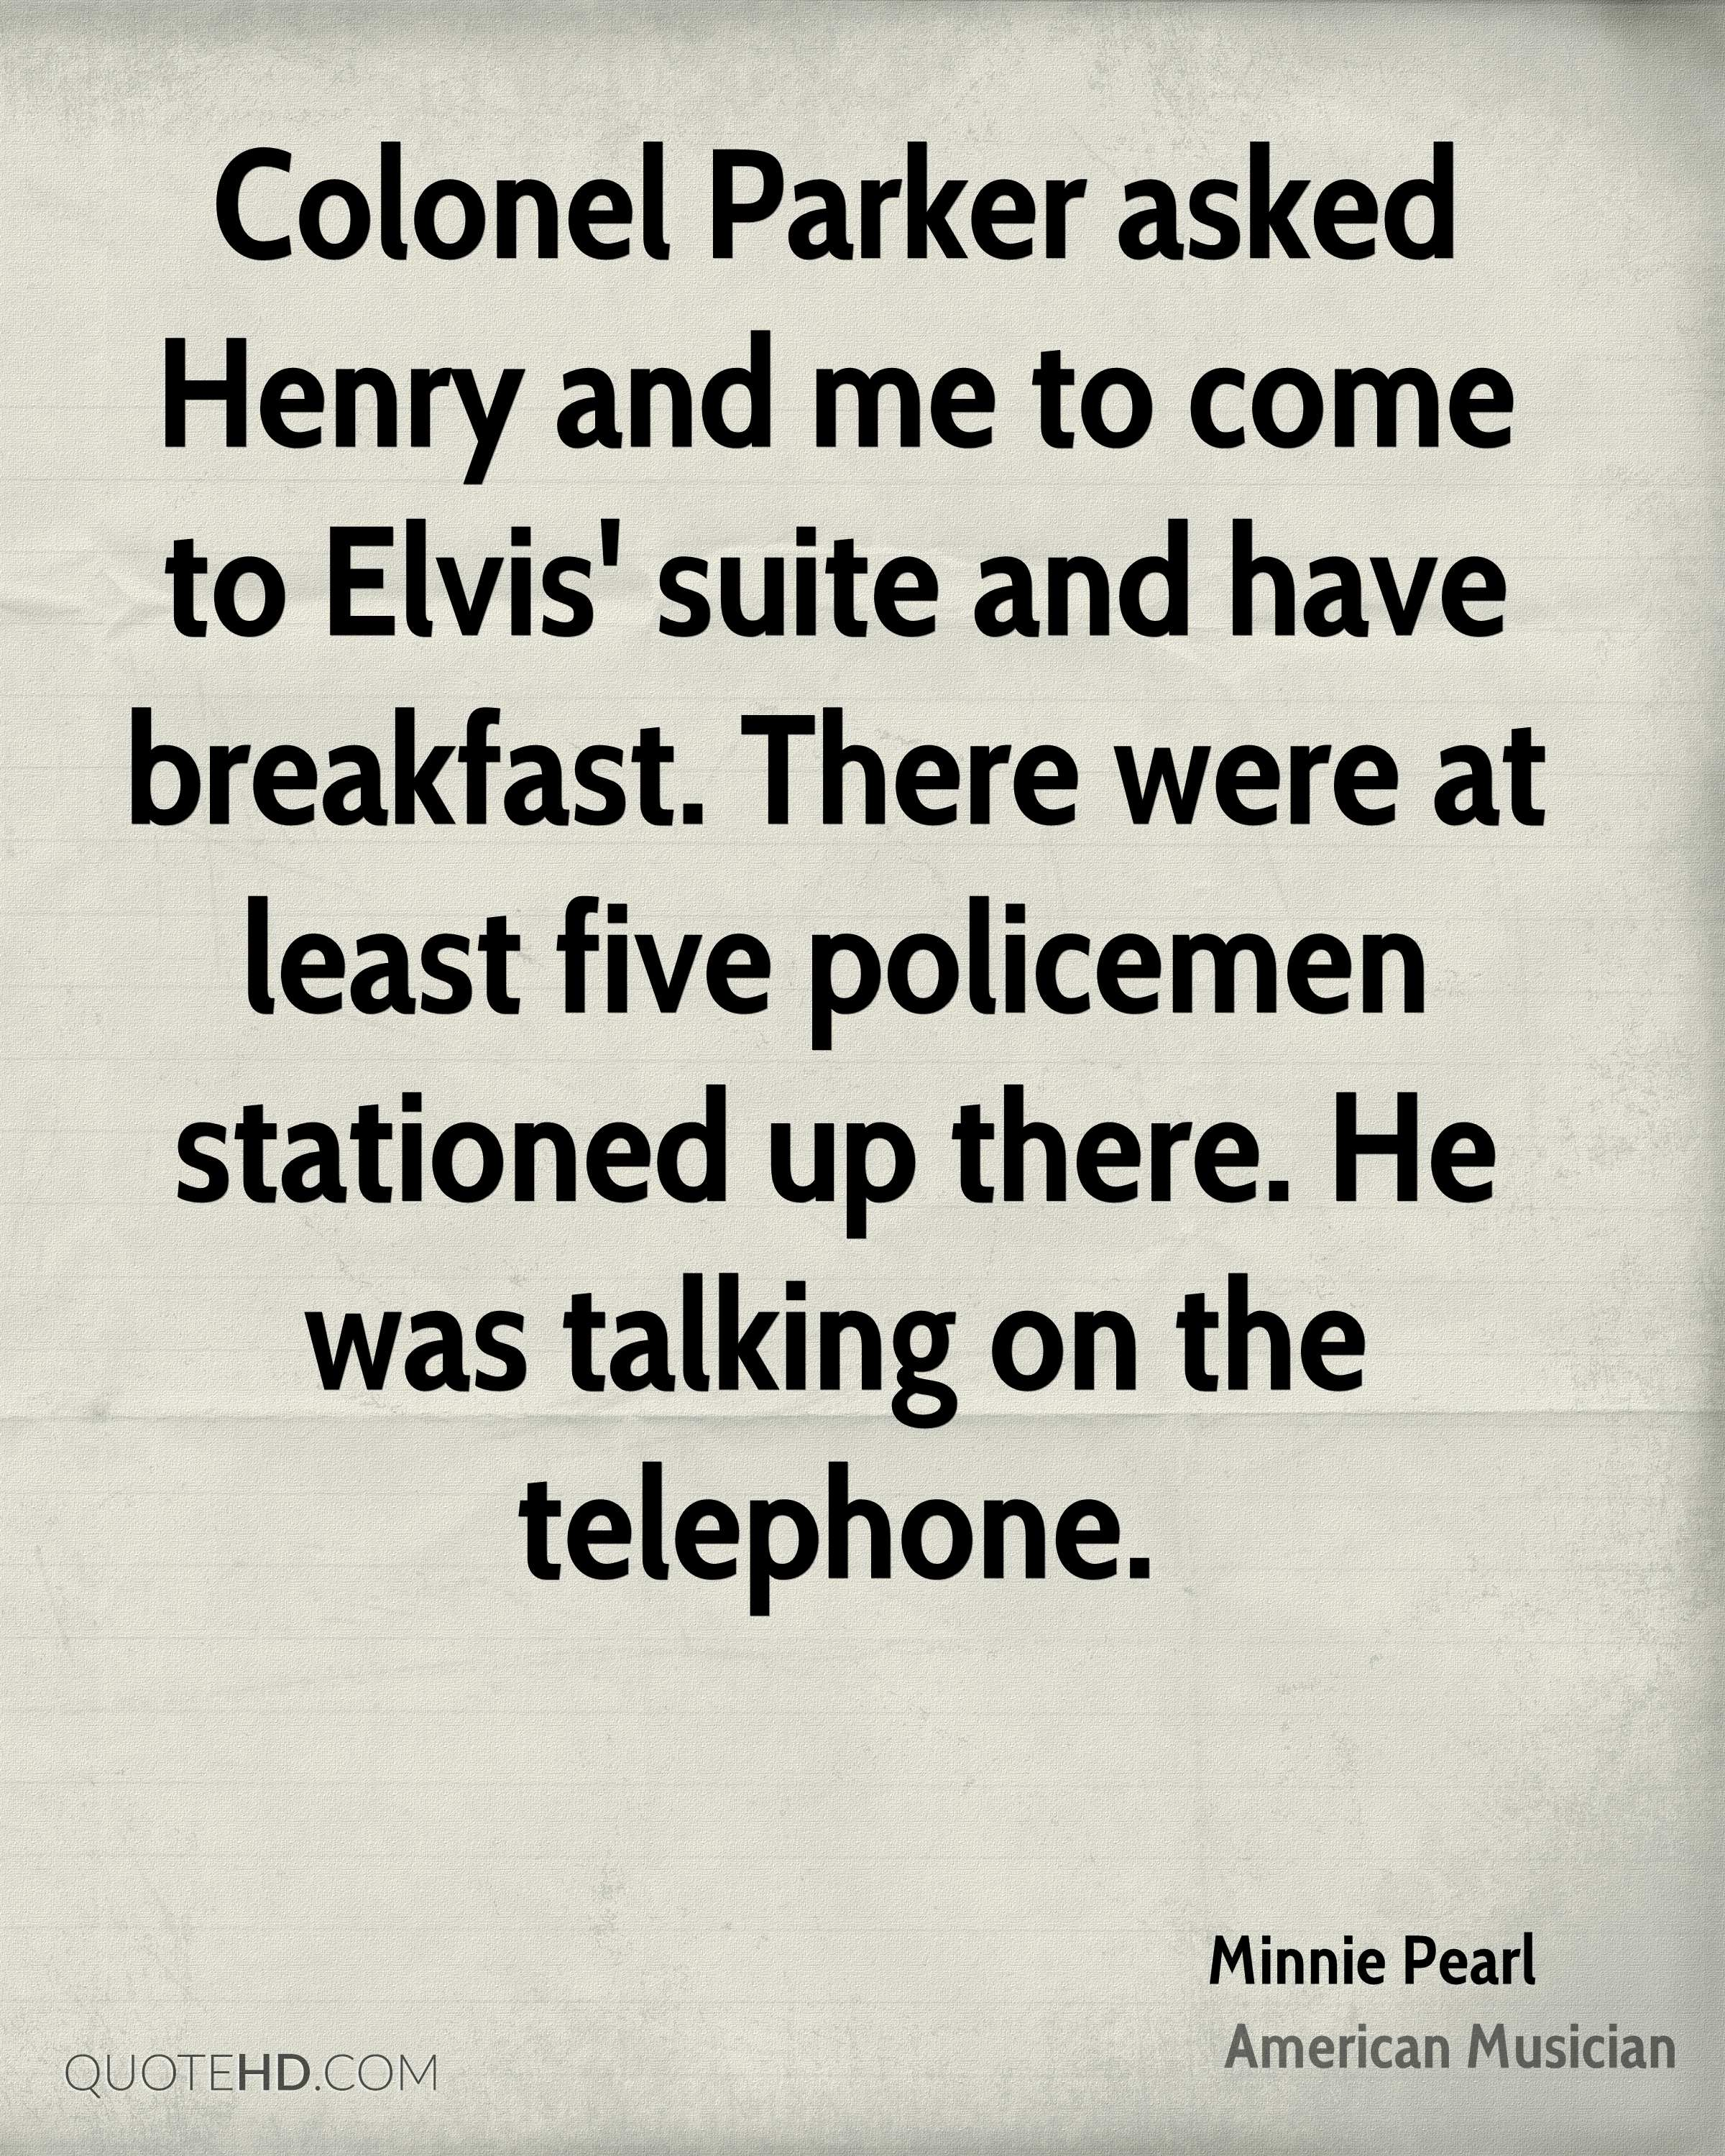 Colonel Parker asked Henry and me to come to Elvis' suite and have breakfast. There were at least five policemen stationed up there. He was talking on the telephone.